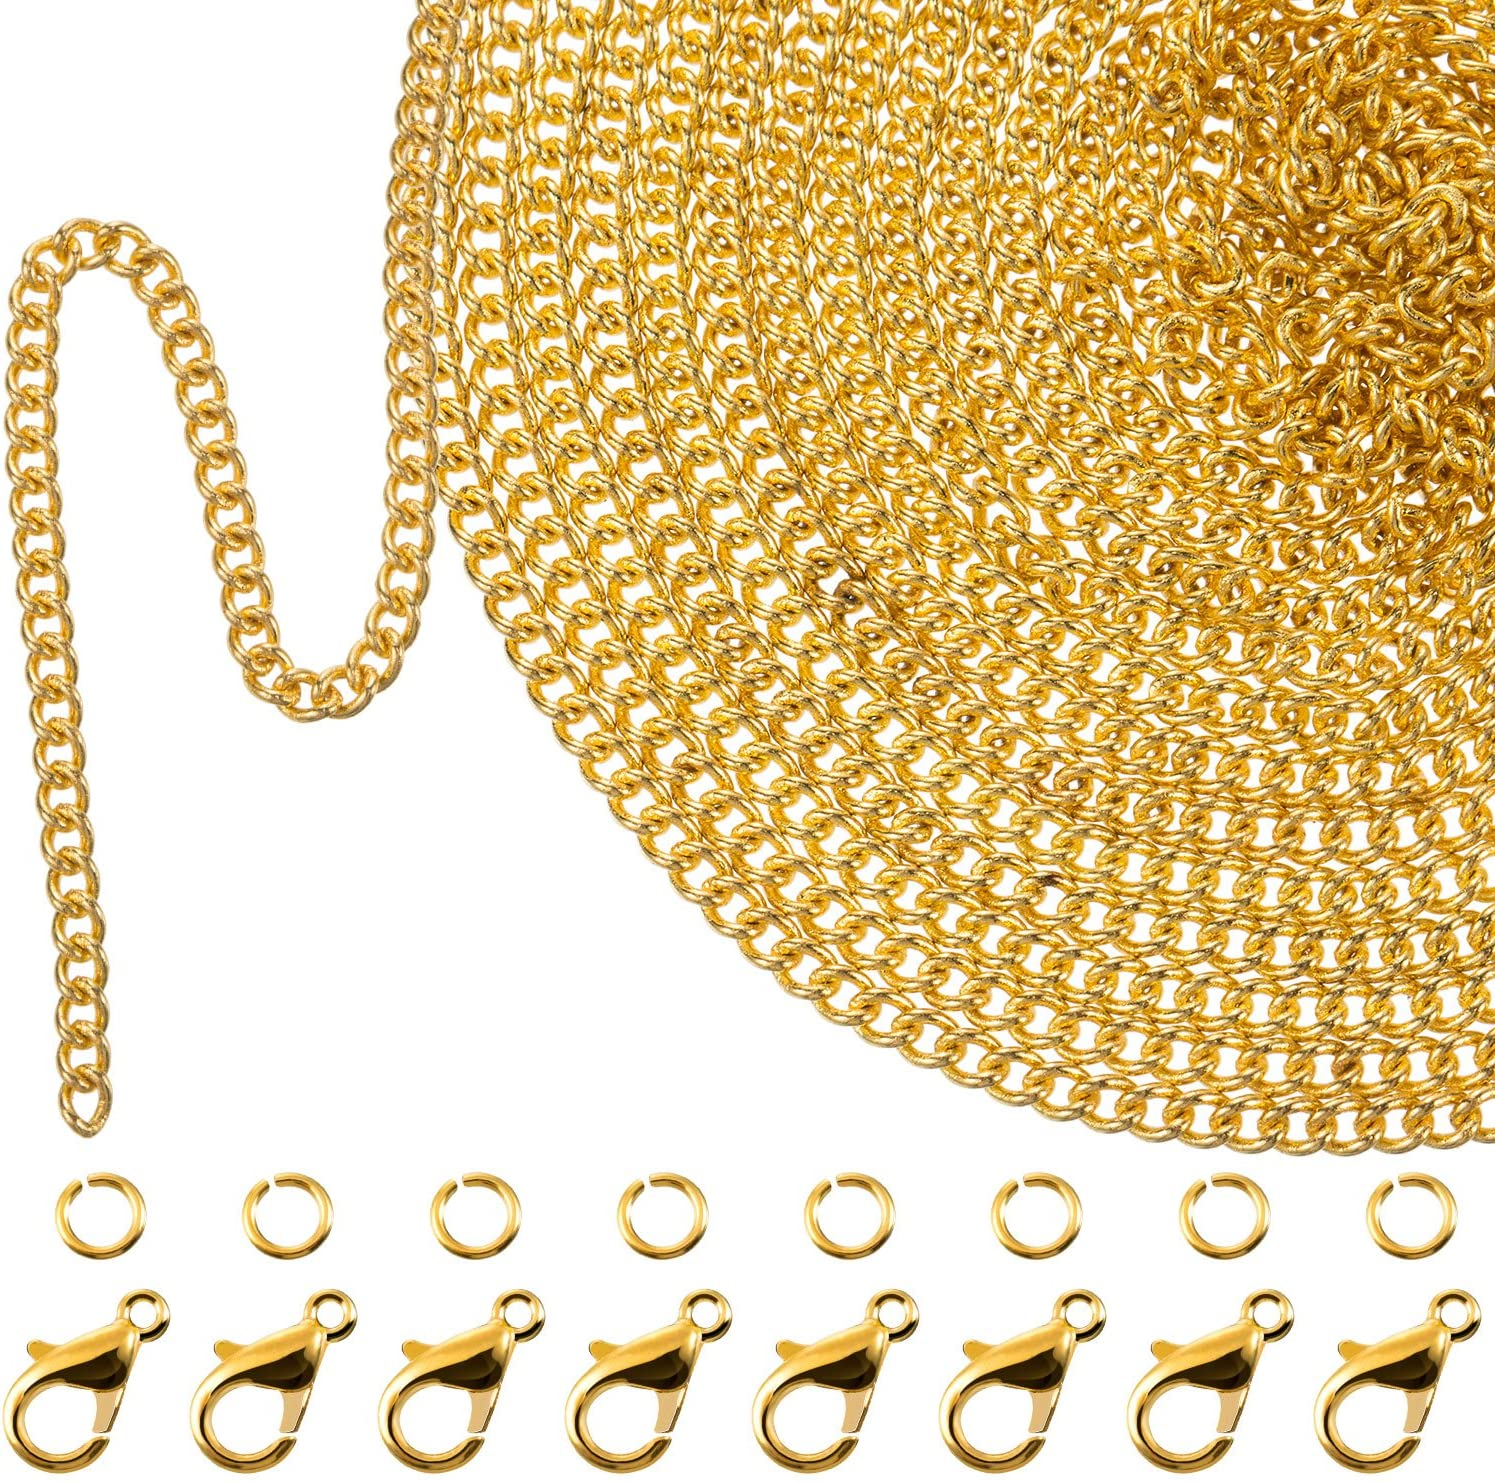 TecUnite 33 Feet Gold Plated Link Chain Necklace with 30 Jump Rings and 20 Lobster Clasps for Men Women Jewelry Chain DIY Making (1.5 mm)